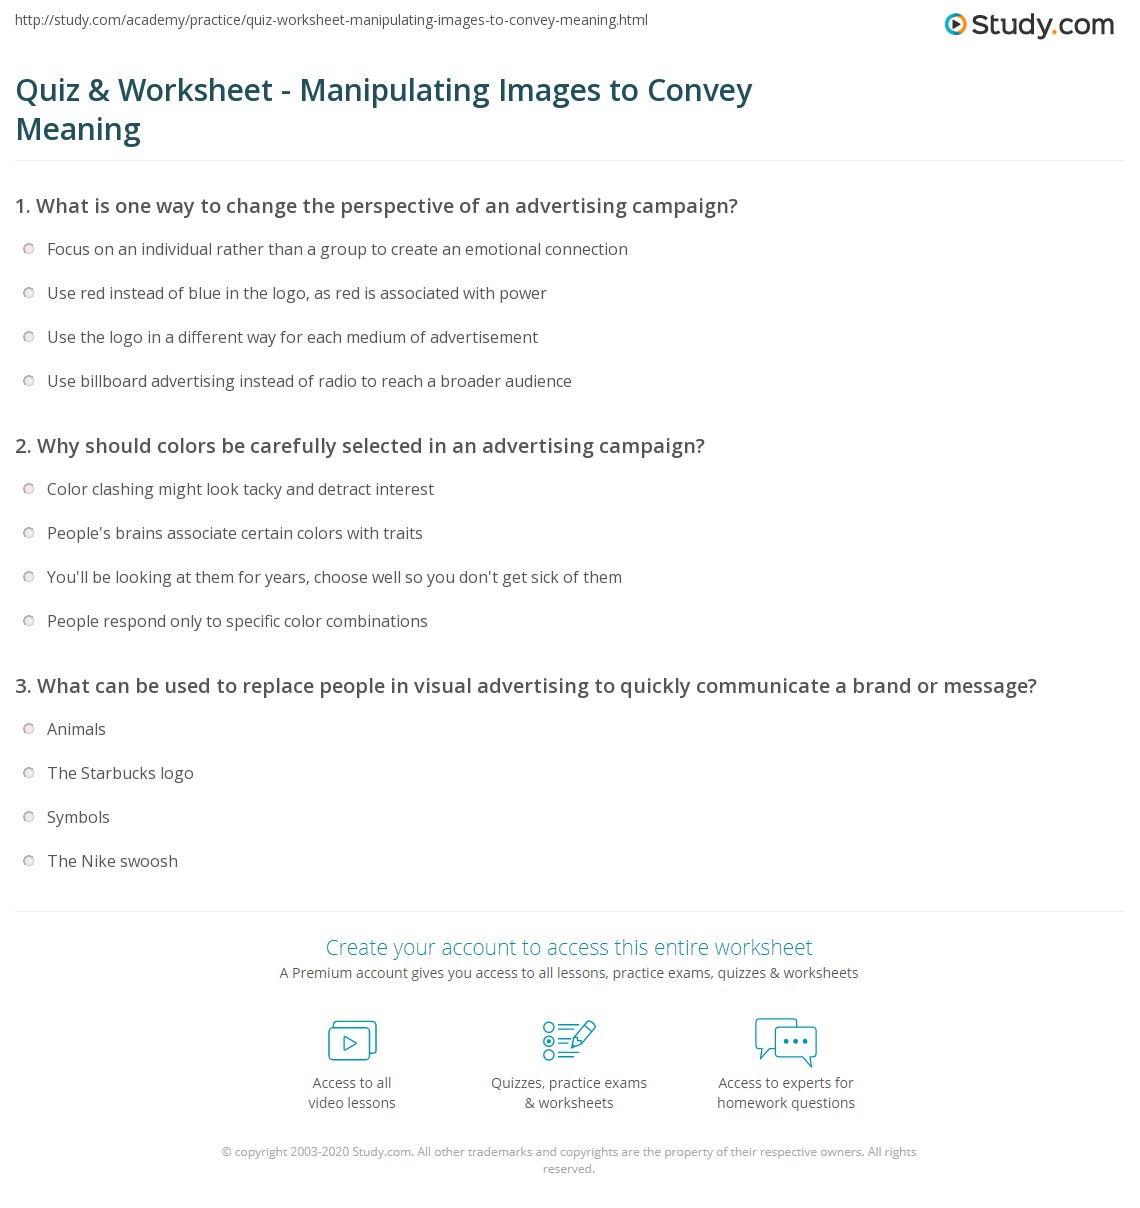 Quiz & Worksheet - Manipulating Images to Convey Meaning | Study.com